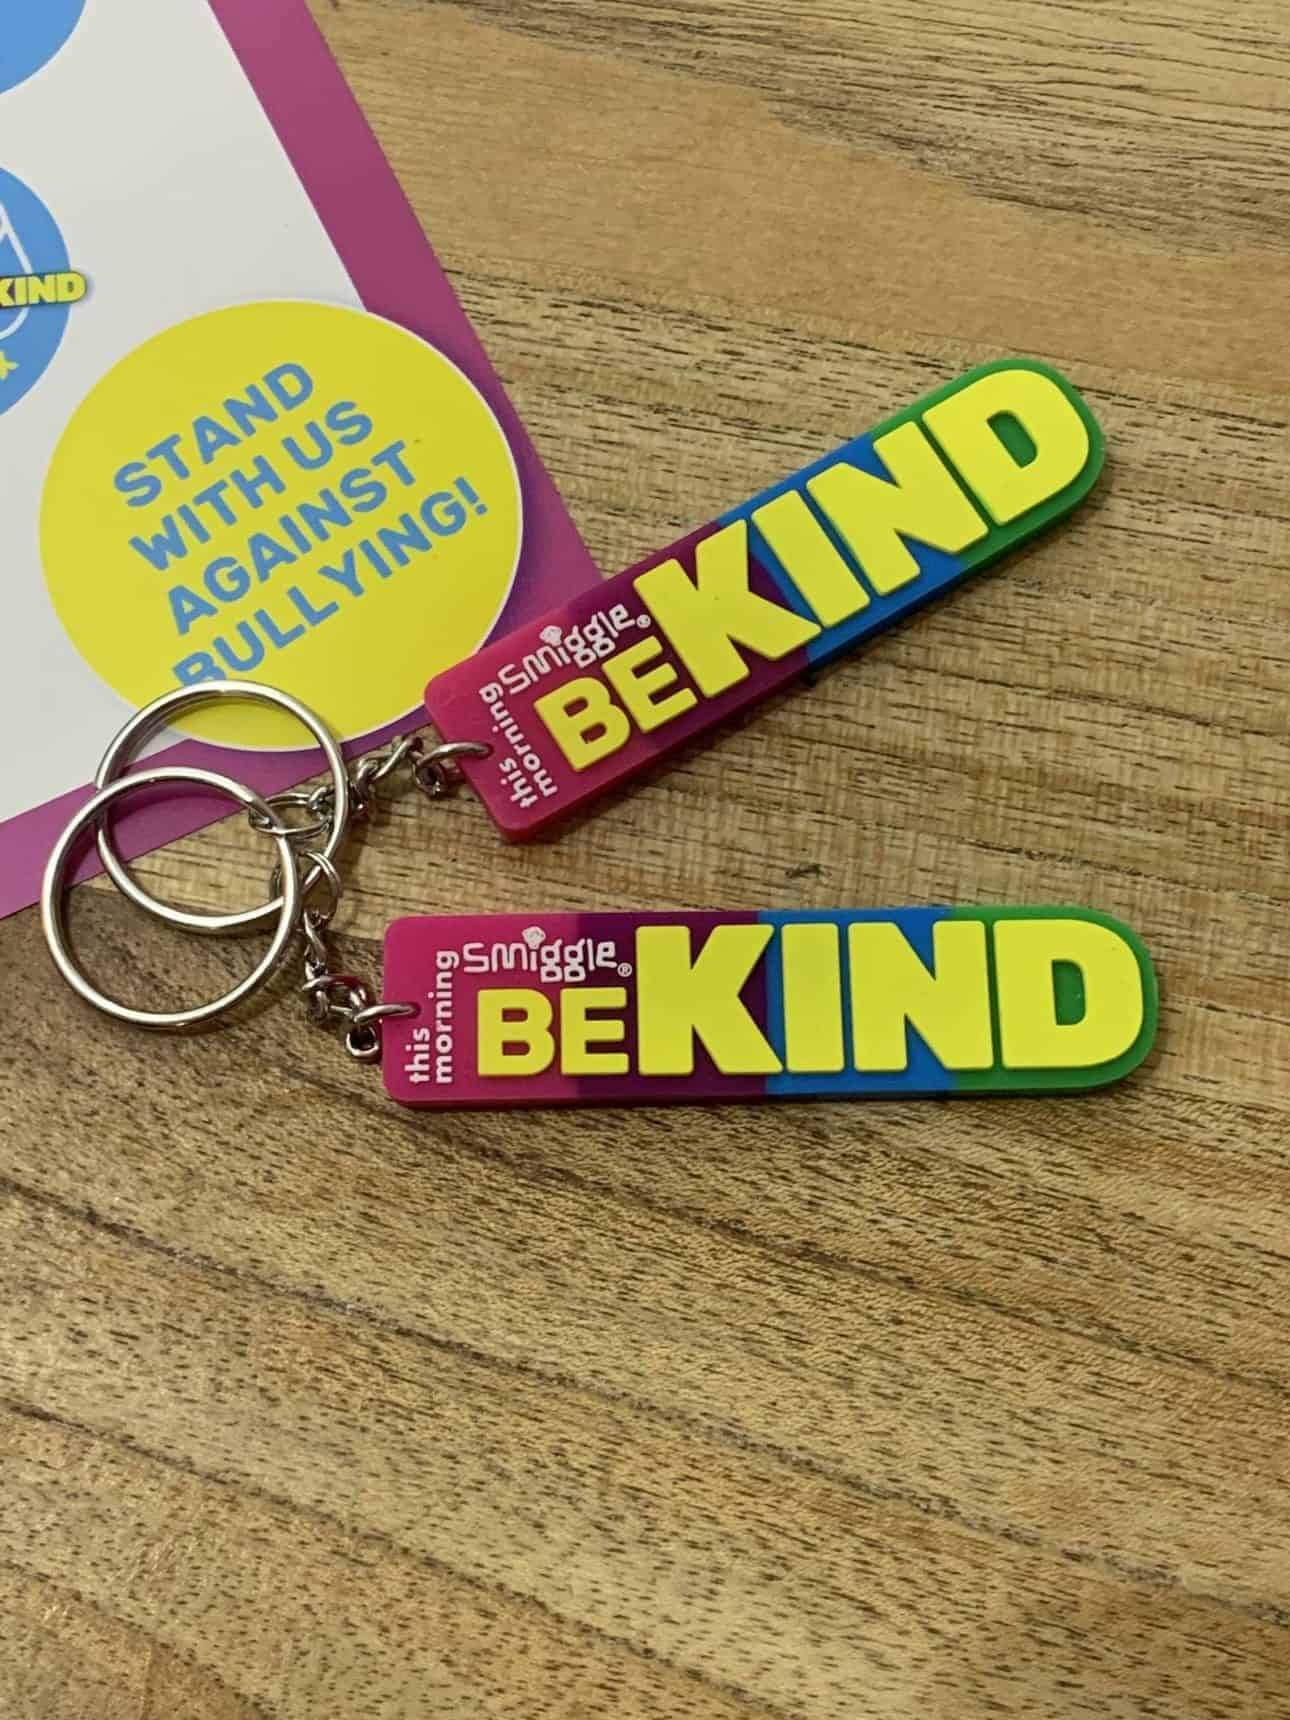 How to get a free Smiggle Be Kind Keyring, smiggle be kind